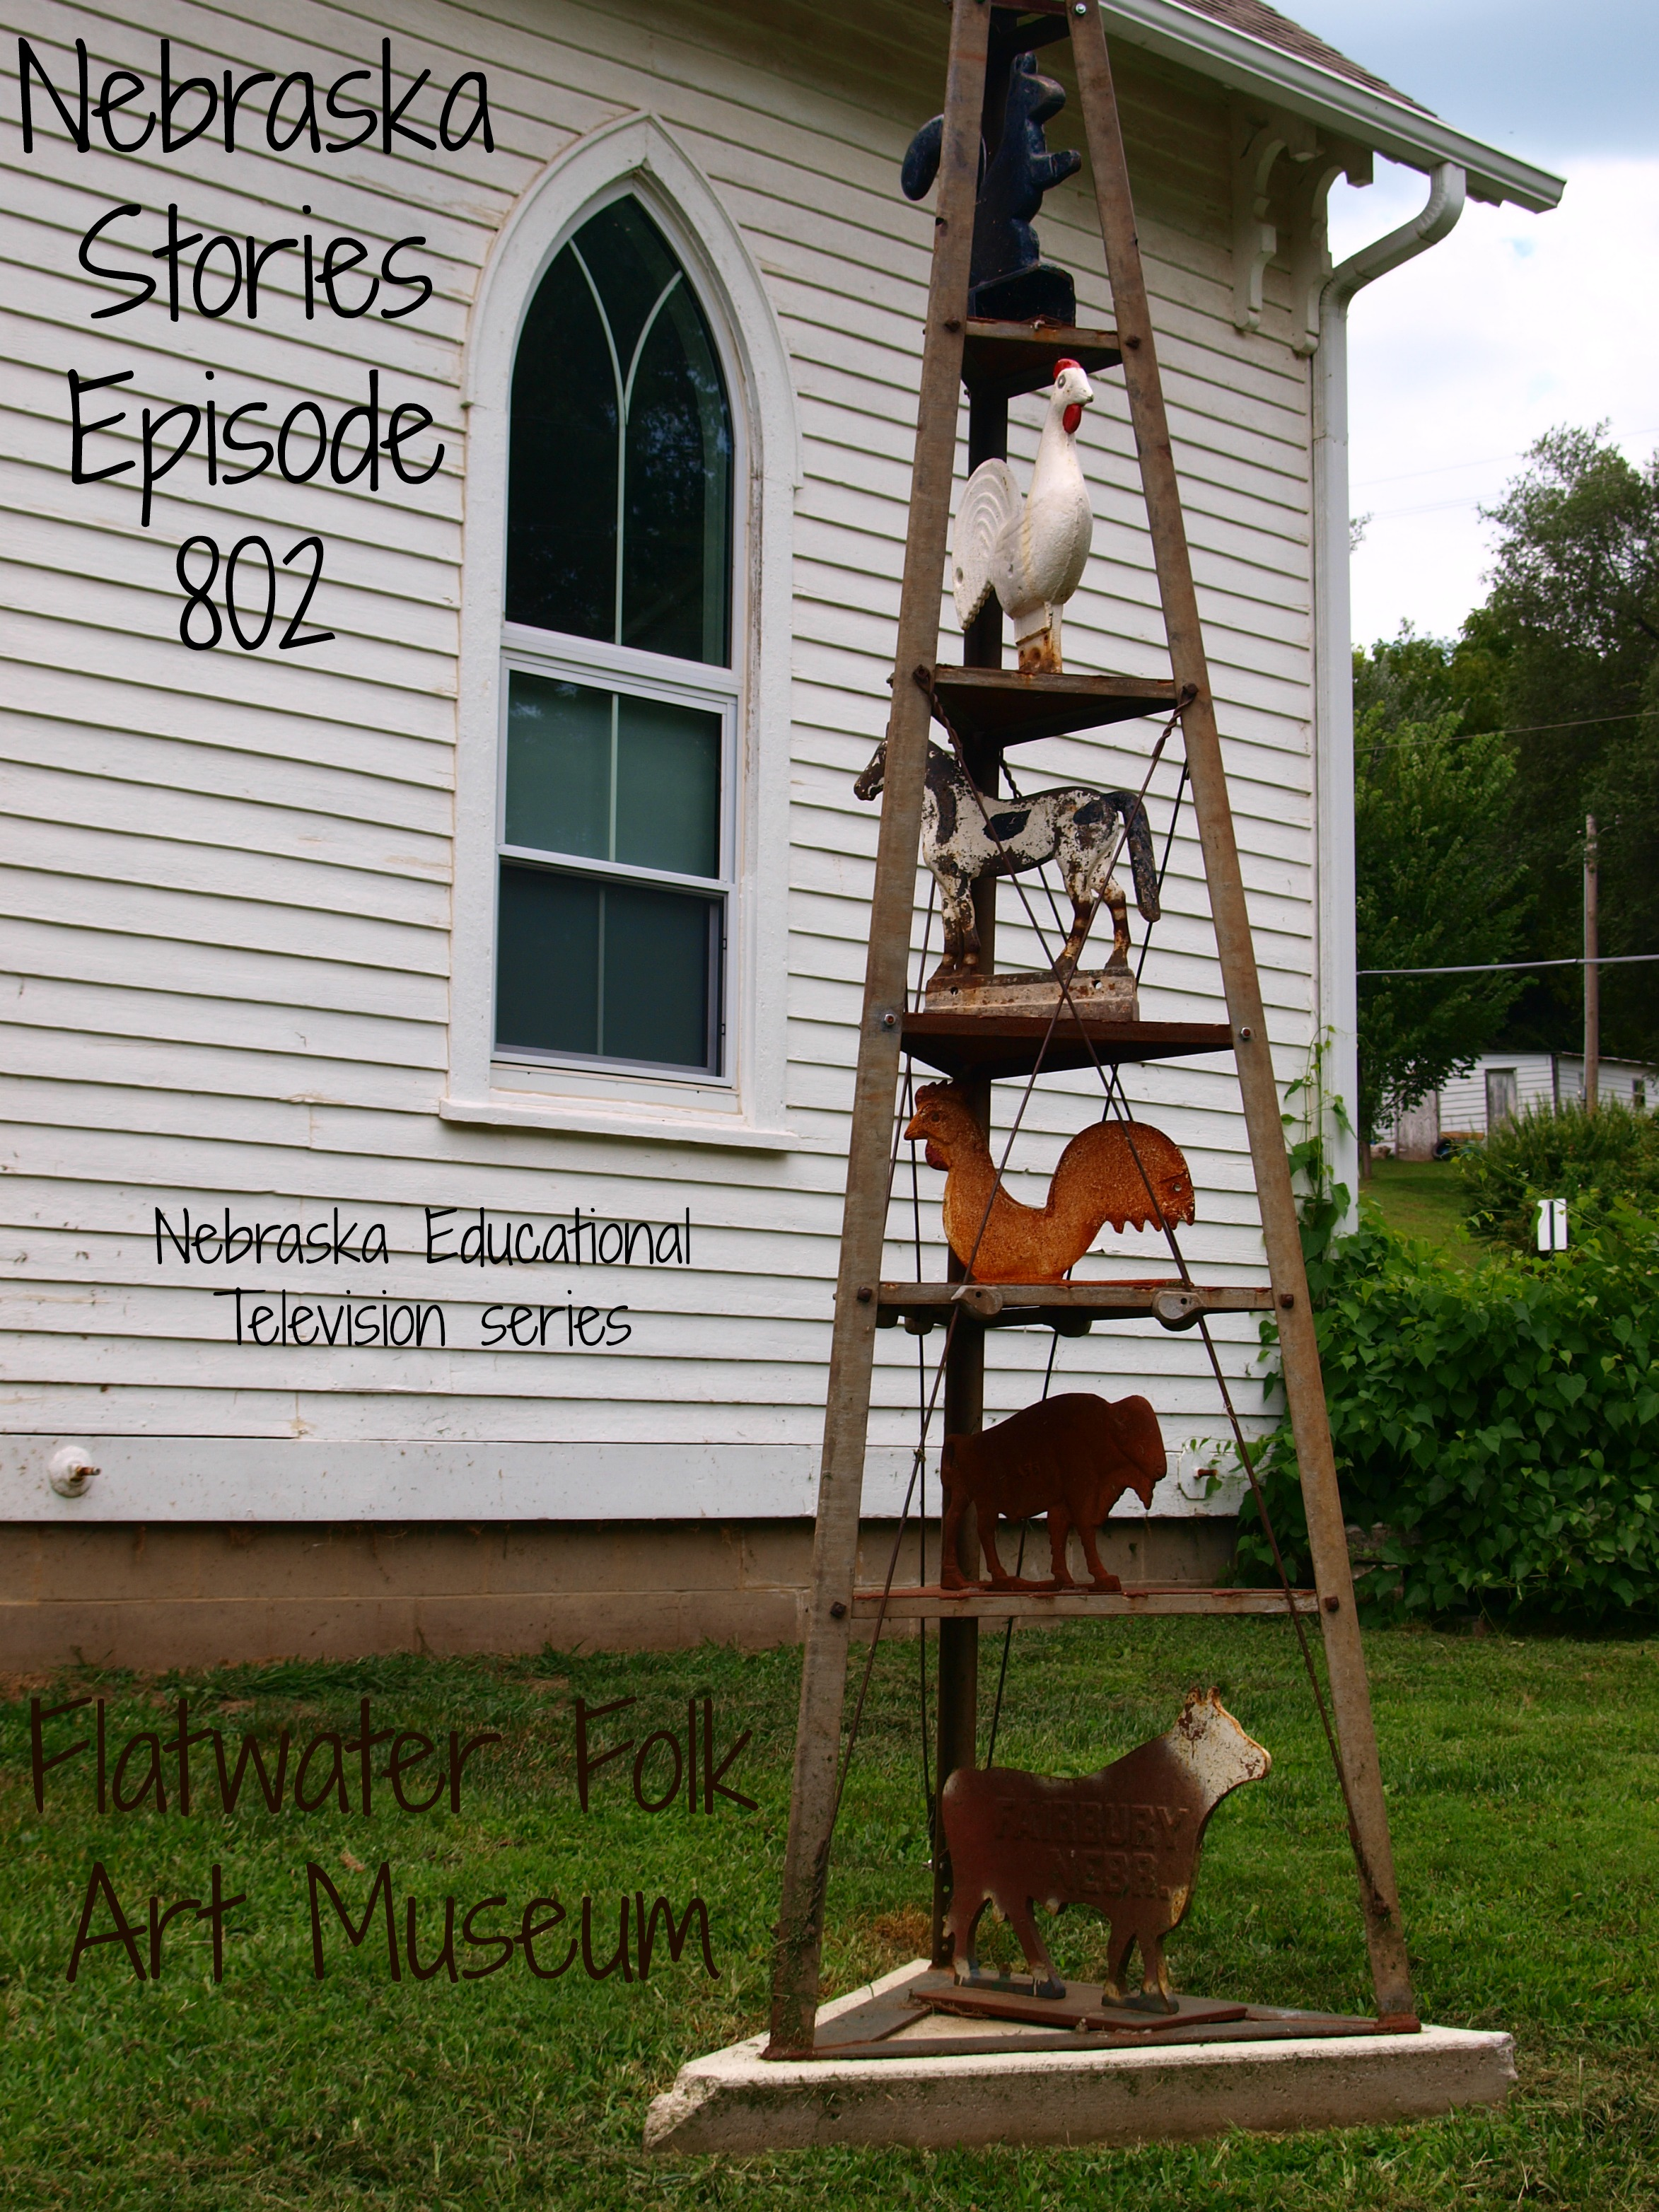 Nebraska Stories Episode 802 features Flatwater Folk Art Museum